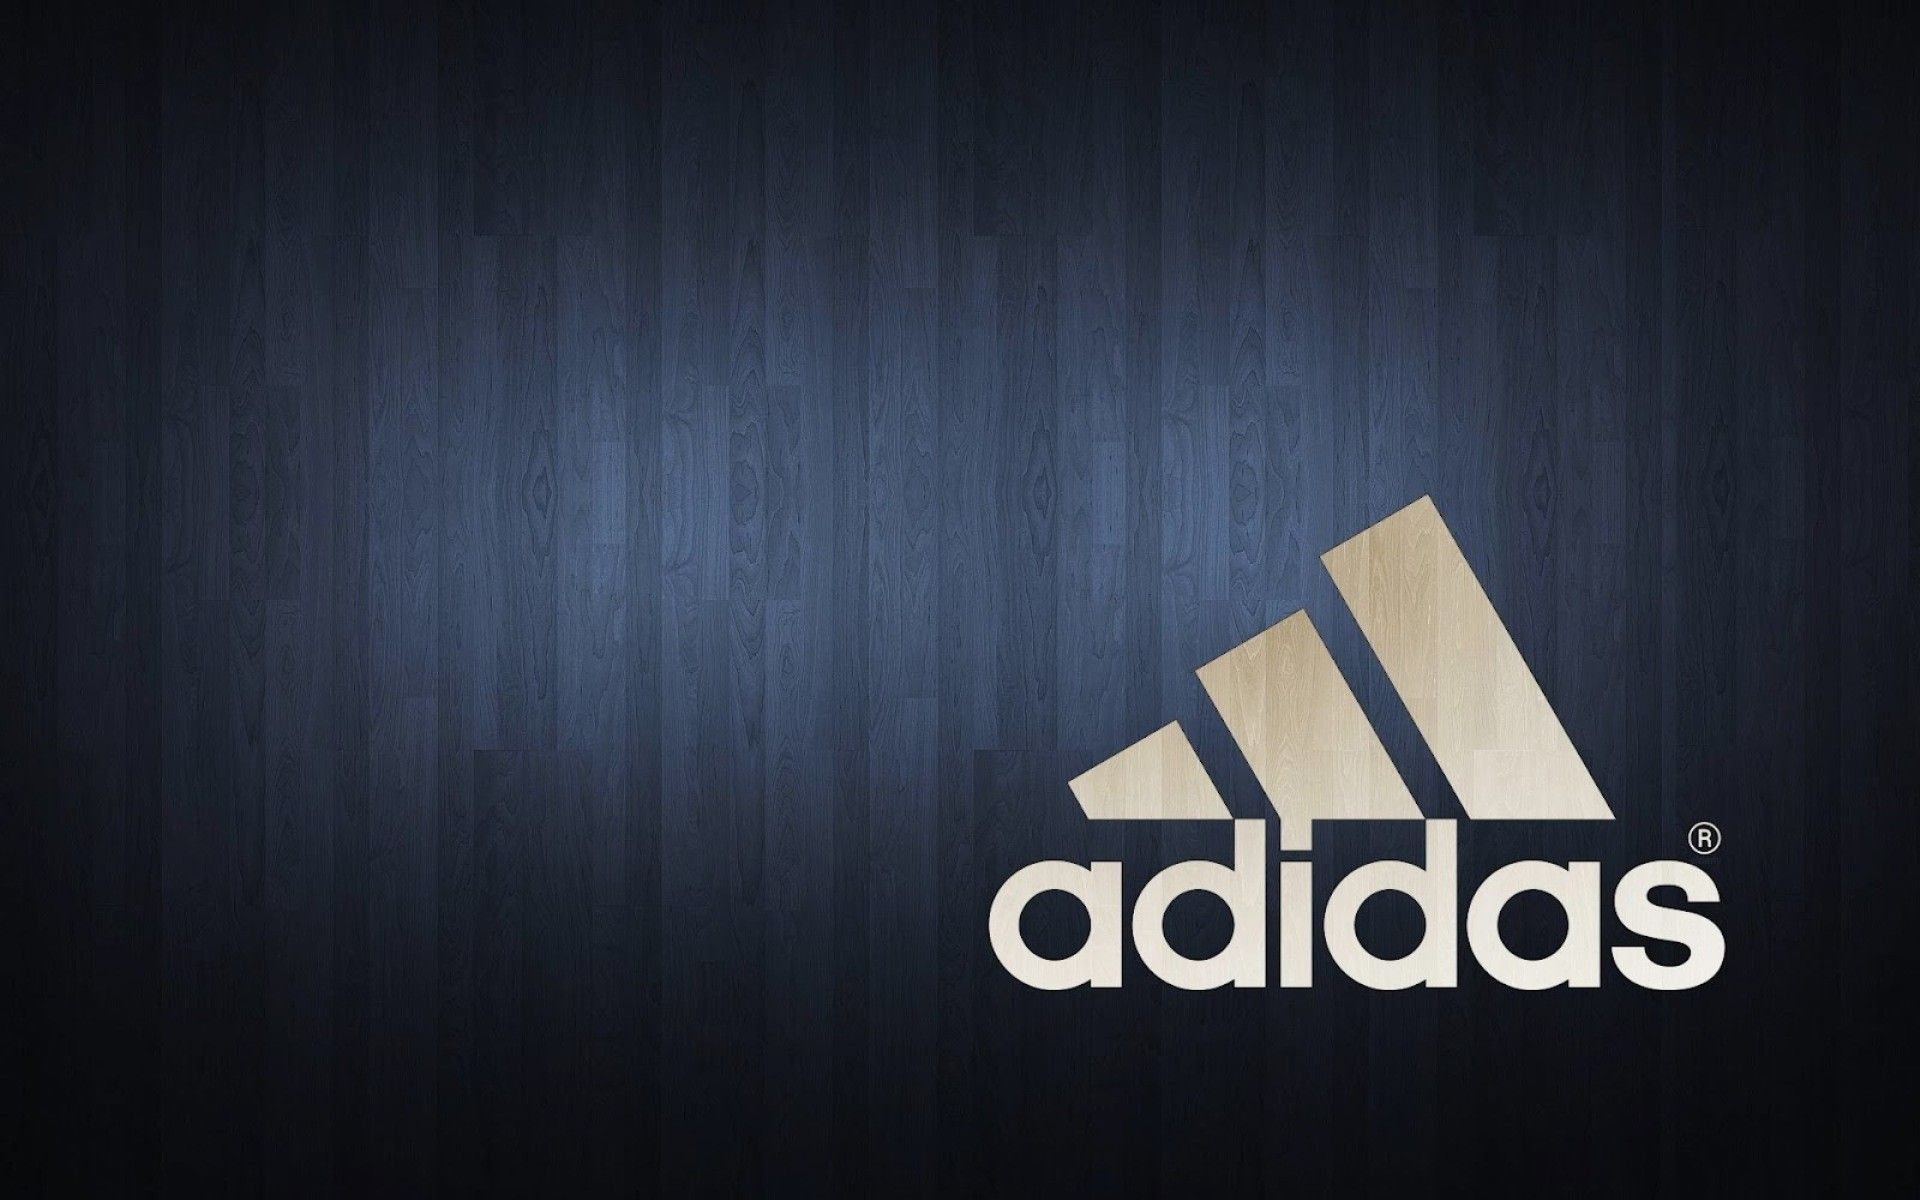 Adidas Wallpapers (76+ imágenes)